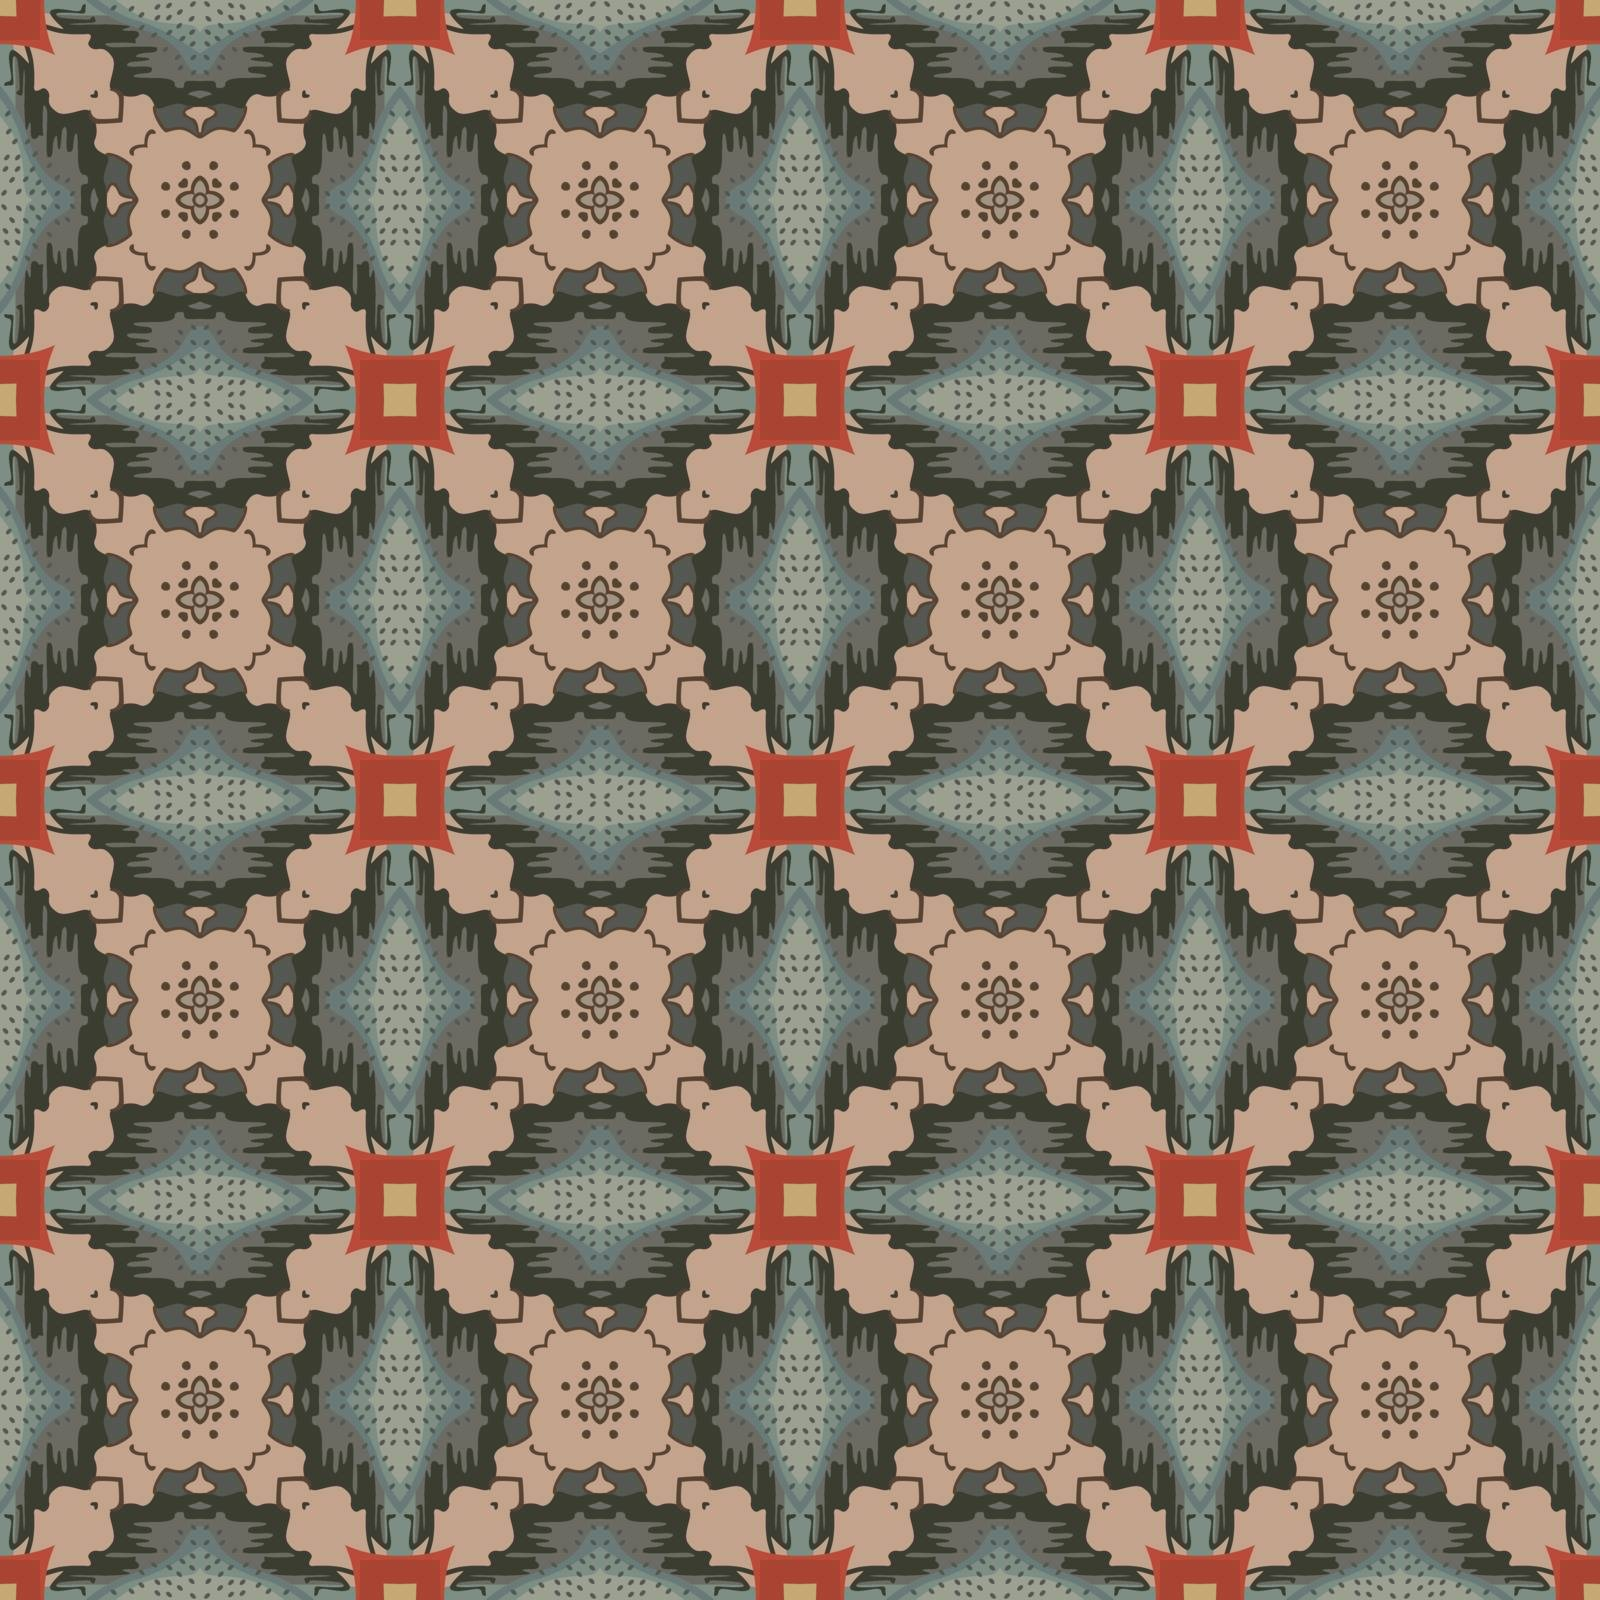 Seamless illustrated pattern made of abstract elements in beige, red, yellow, brown and gray